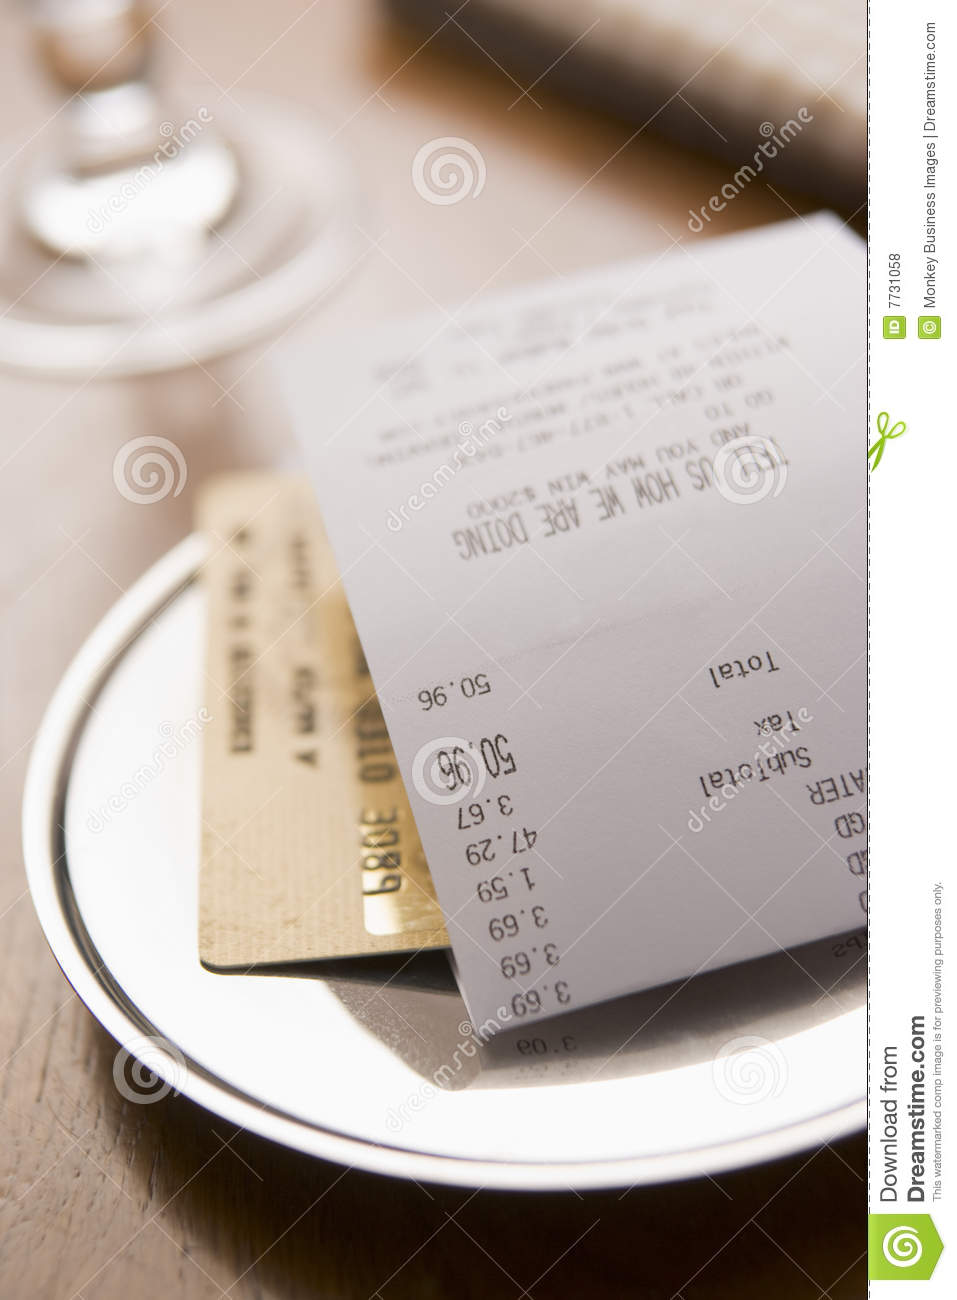 paying restaurant bill with a credit card royalty free